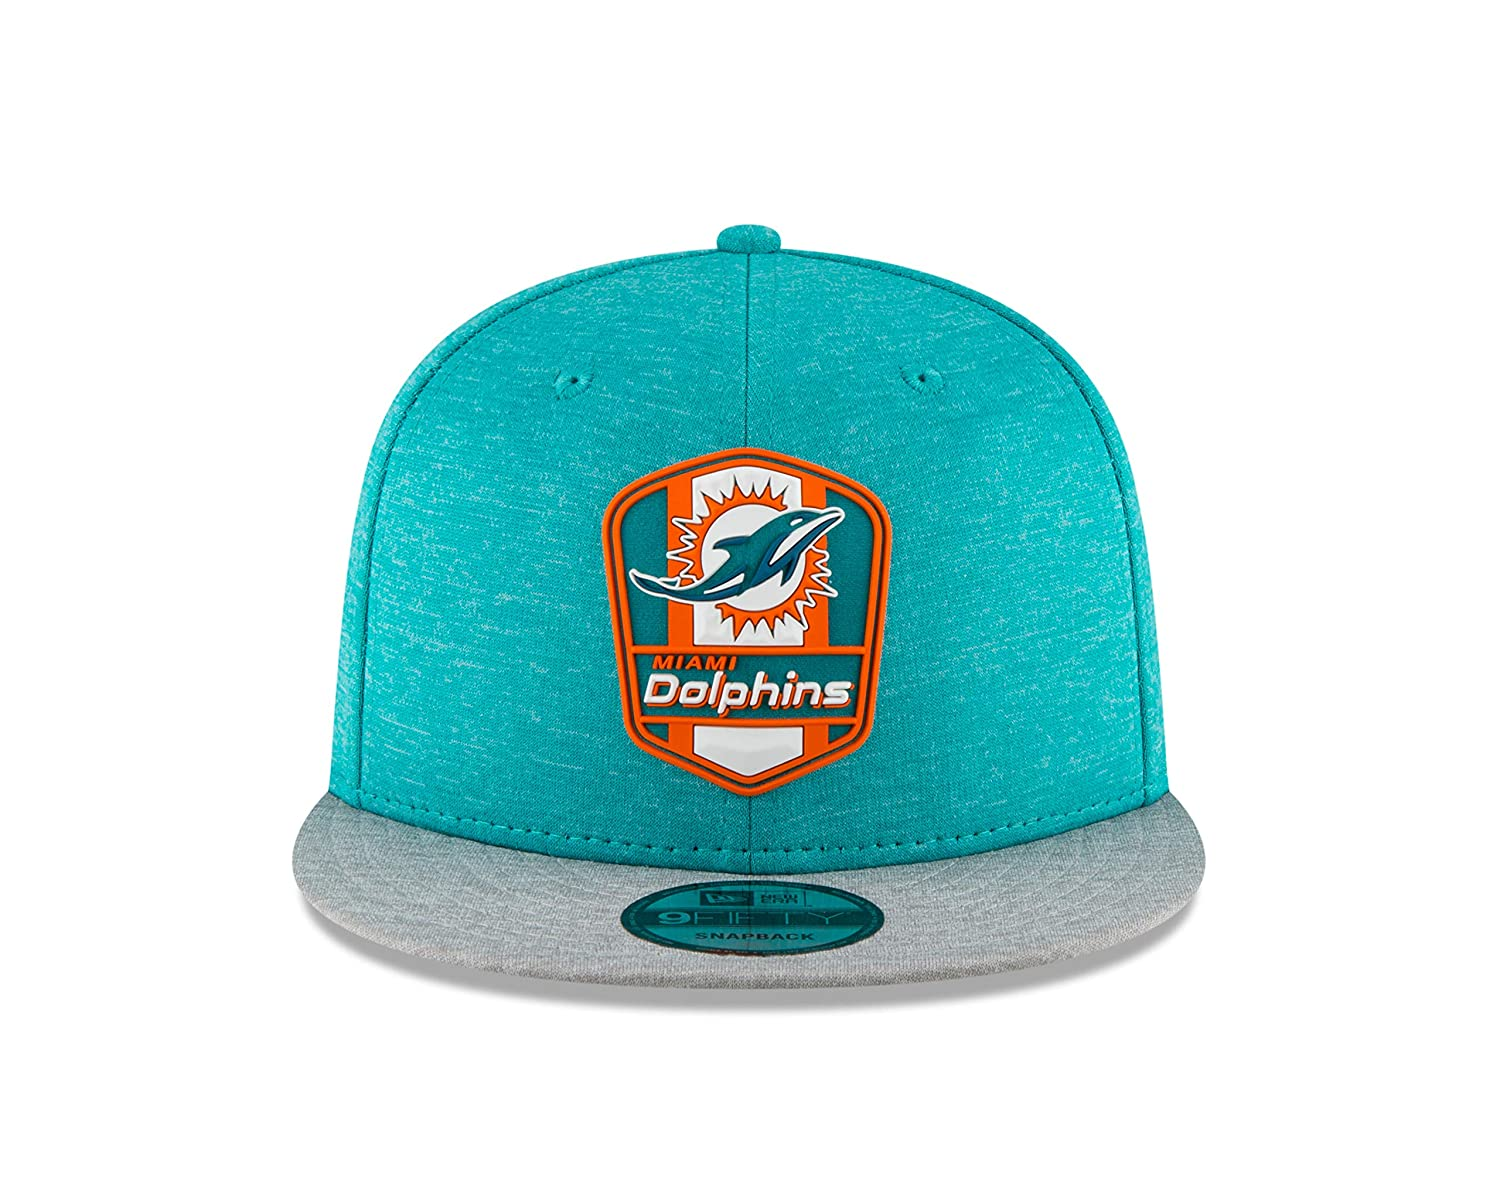 super popular 17a09 efcdb Amazon.com   New Era Miami Dolphins 2018 NFL Sideline Road Official 9FIFTY  Snapback Hat   Sports   Outdoors